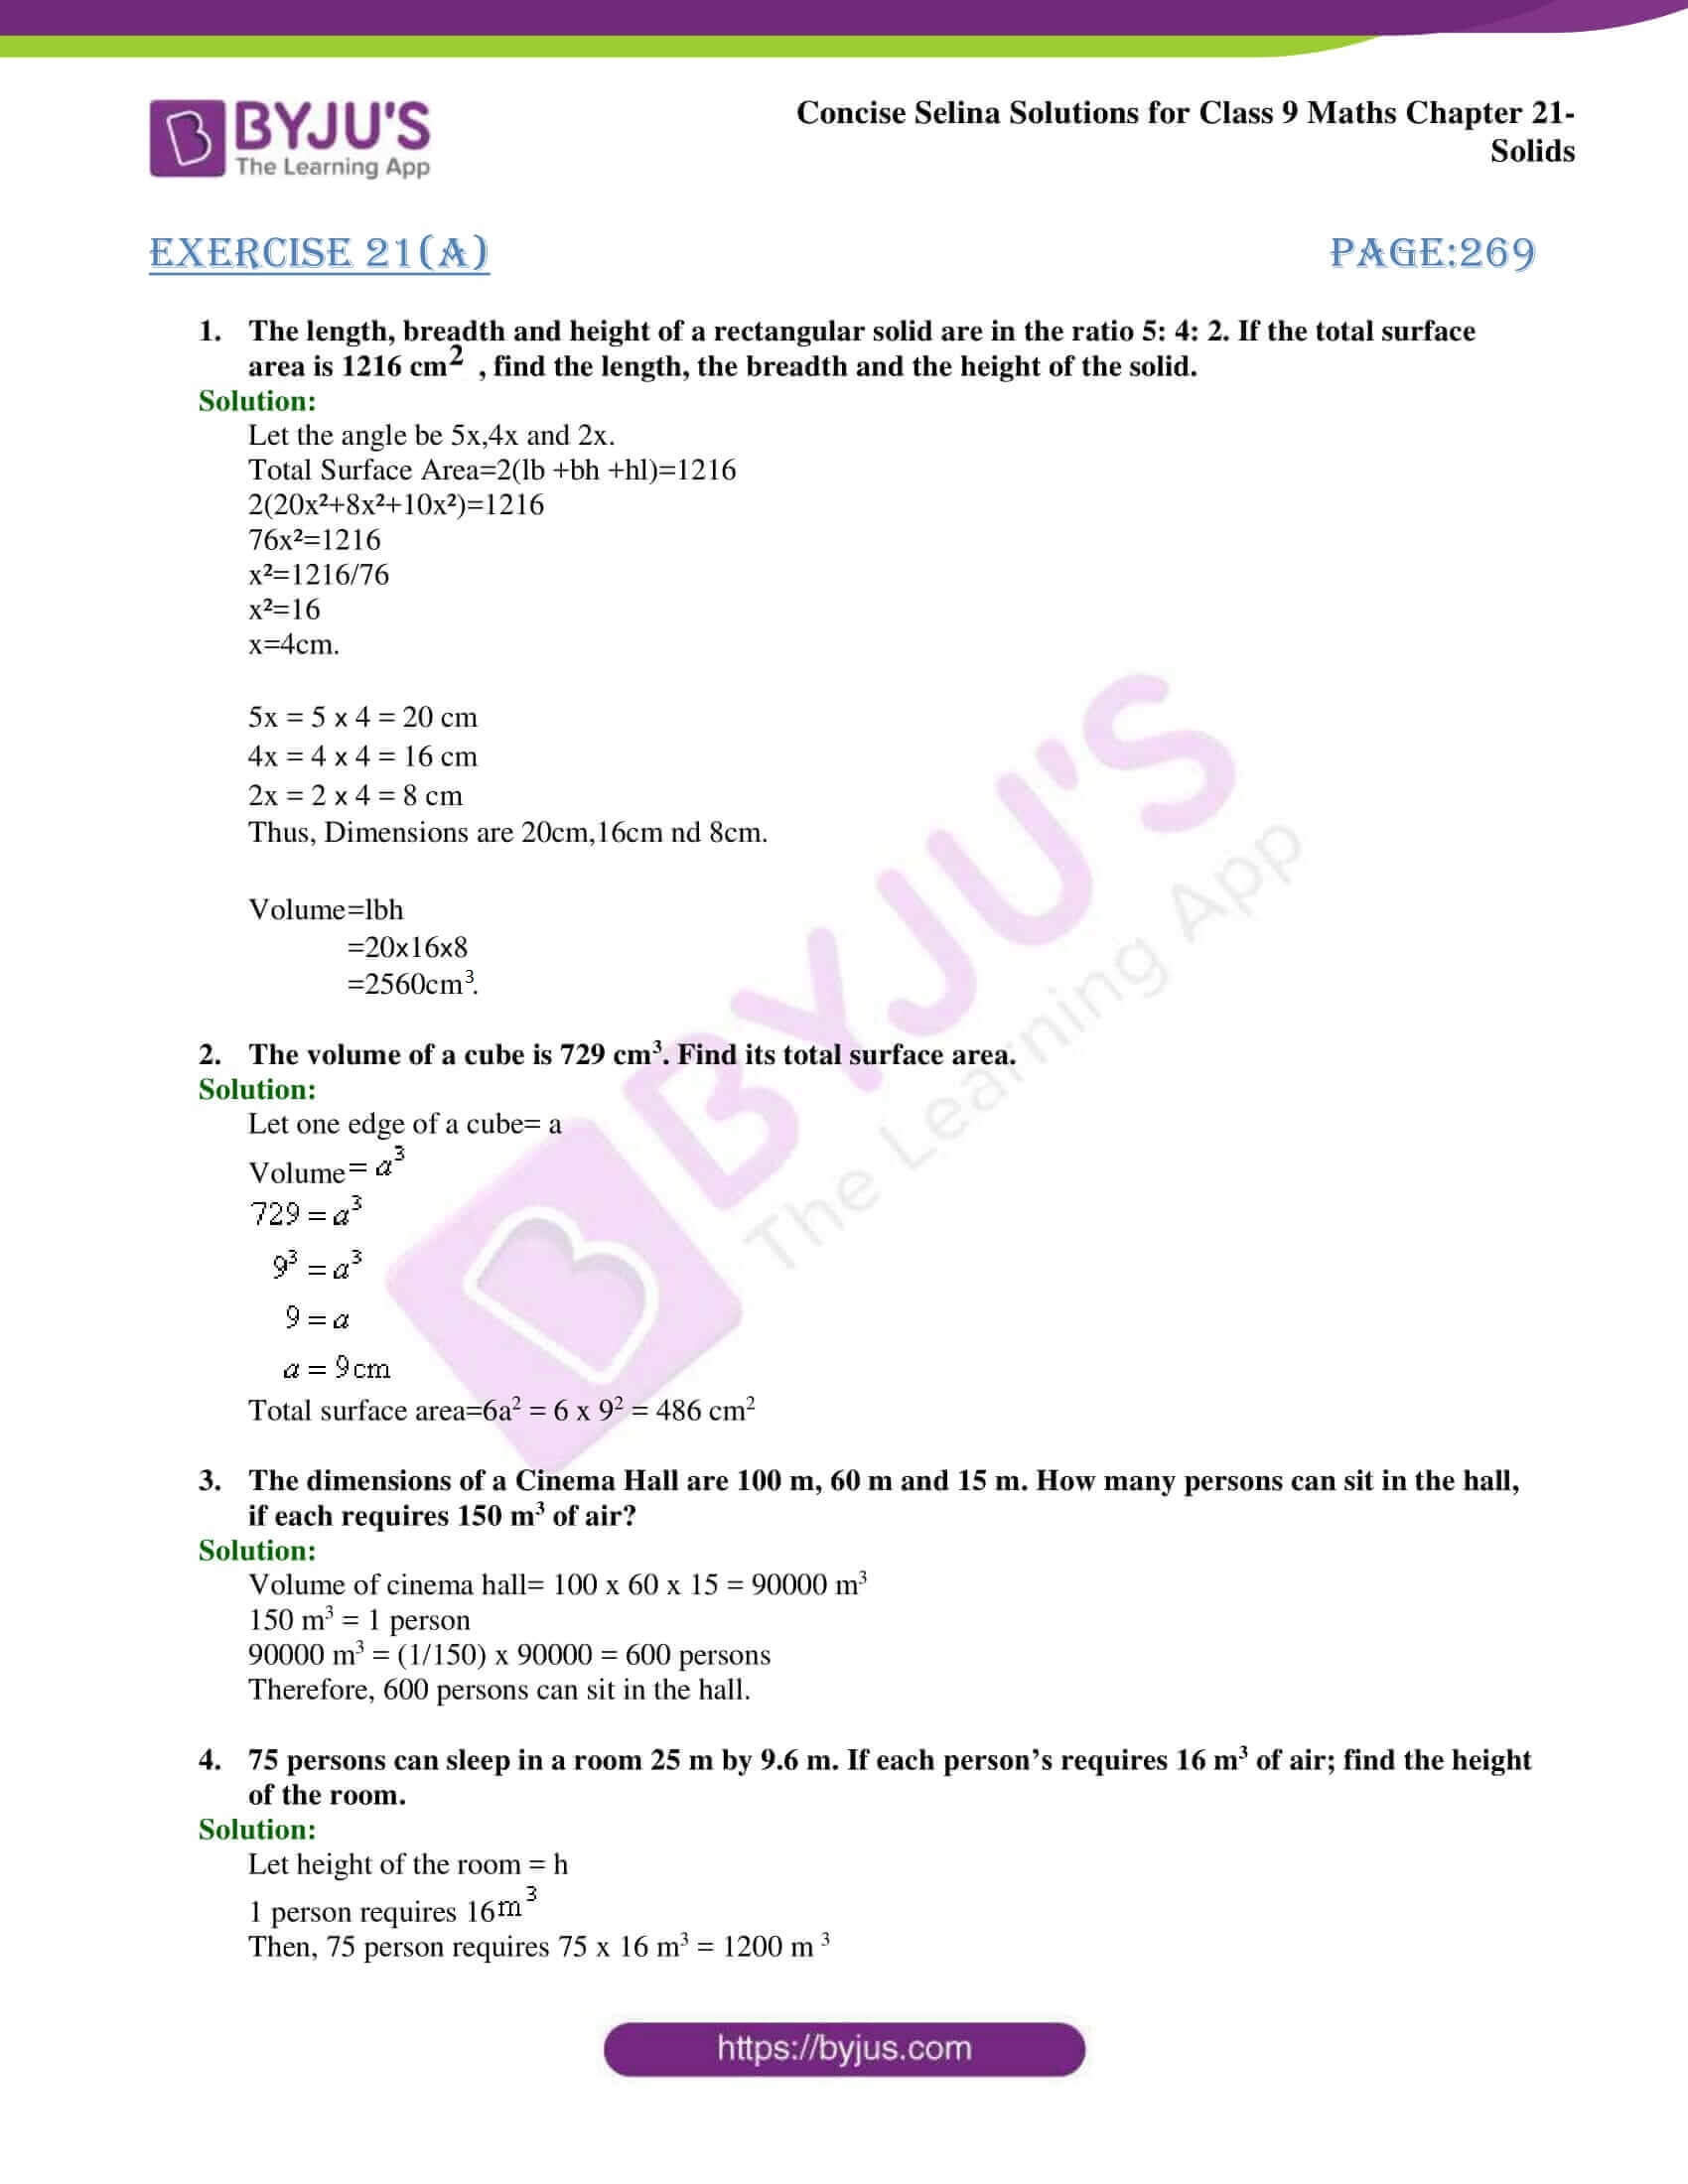 Concise Selina Solutions Class 9 Maths Chapter 21 Solids part 01